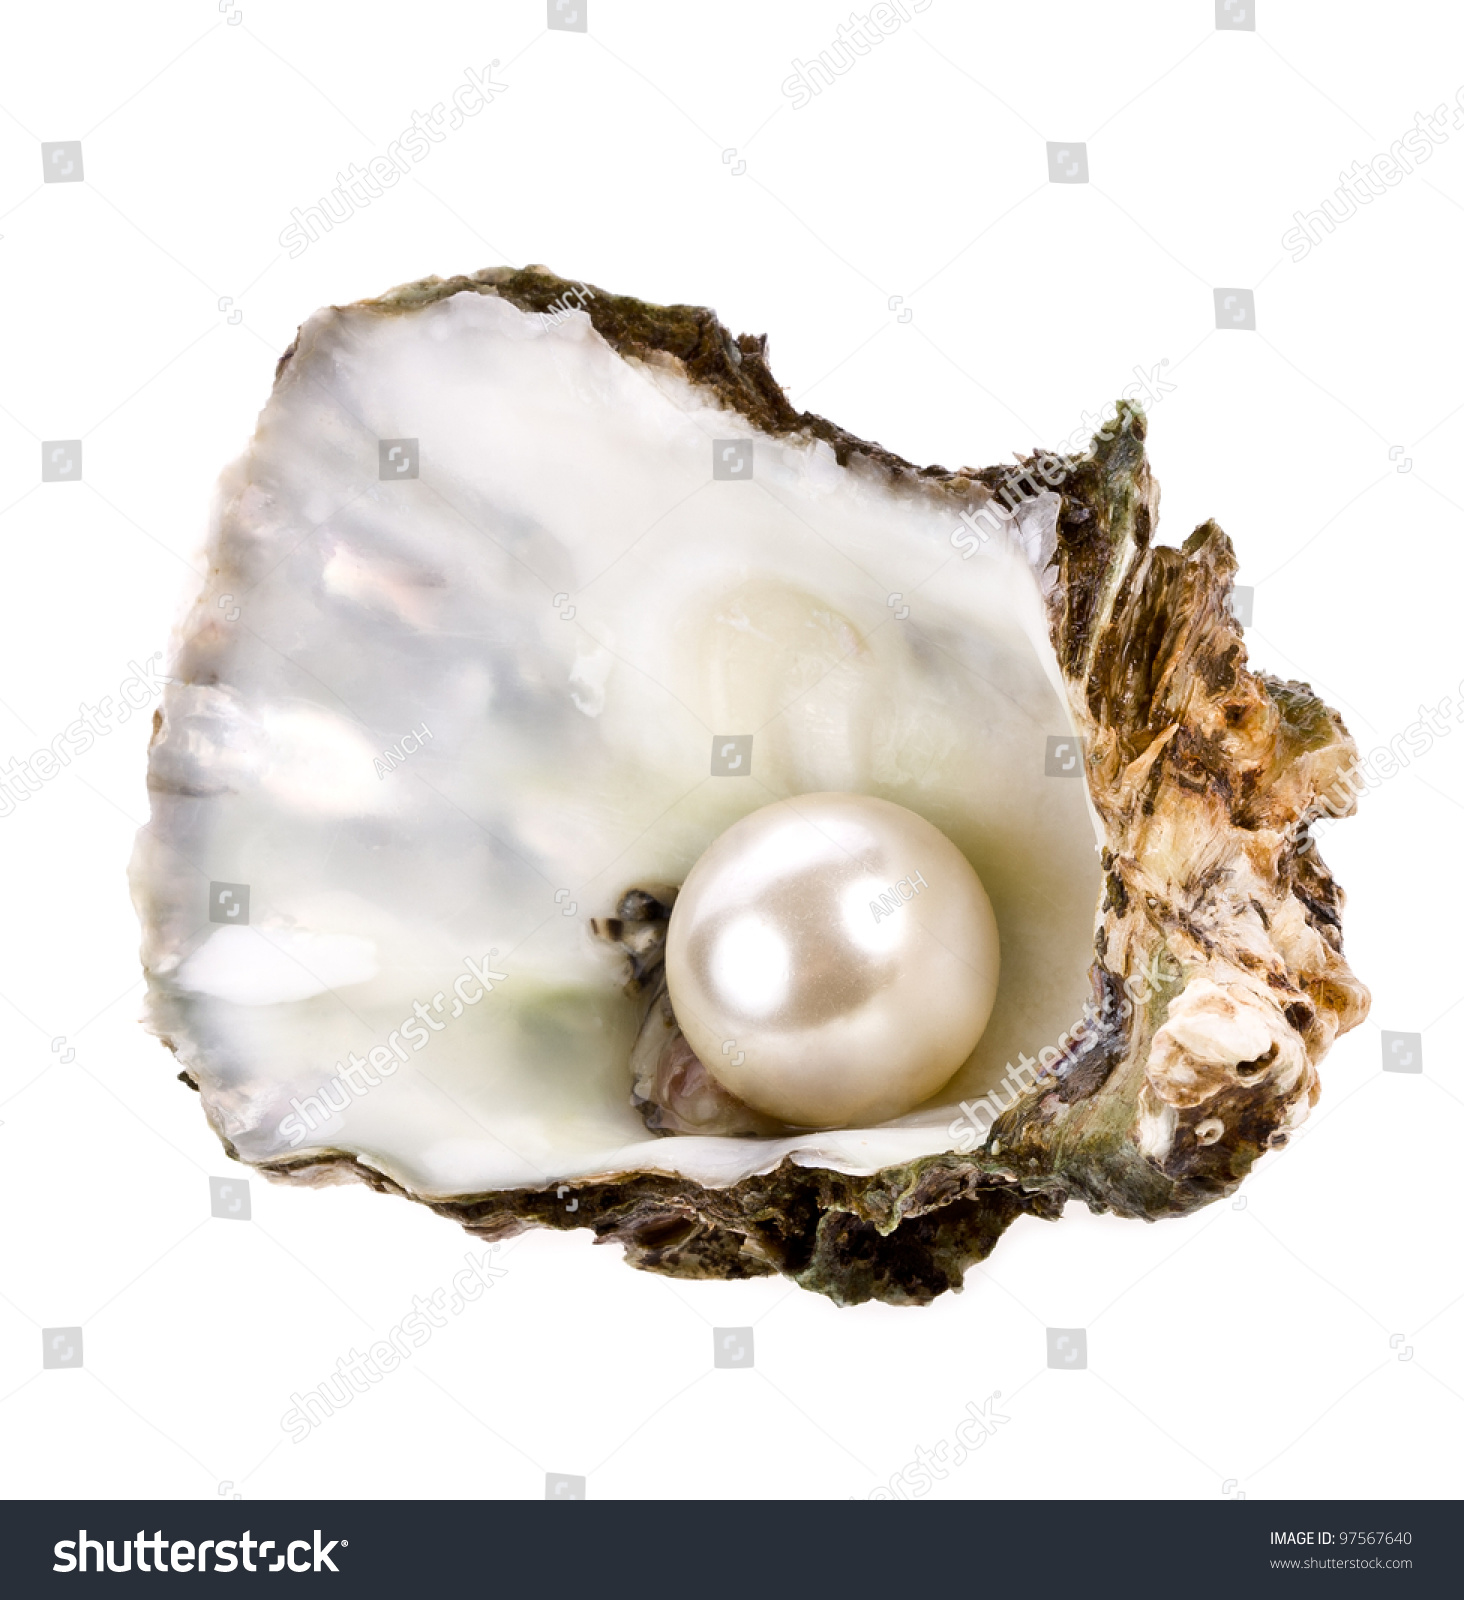 dating oyster shells About cambridge core  δ 14 c values in oyster shell  posing a major obstacle to the use of conchiolin as an alternative material for radiocarbon dating.